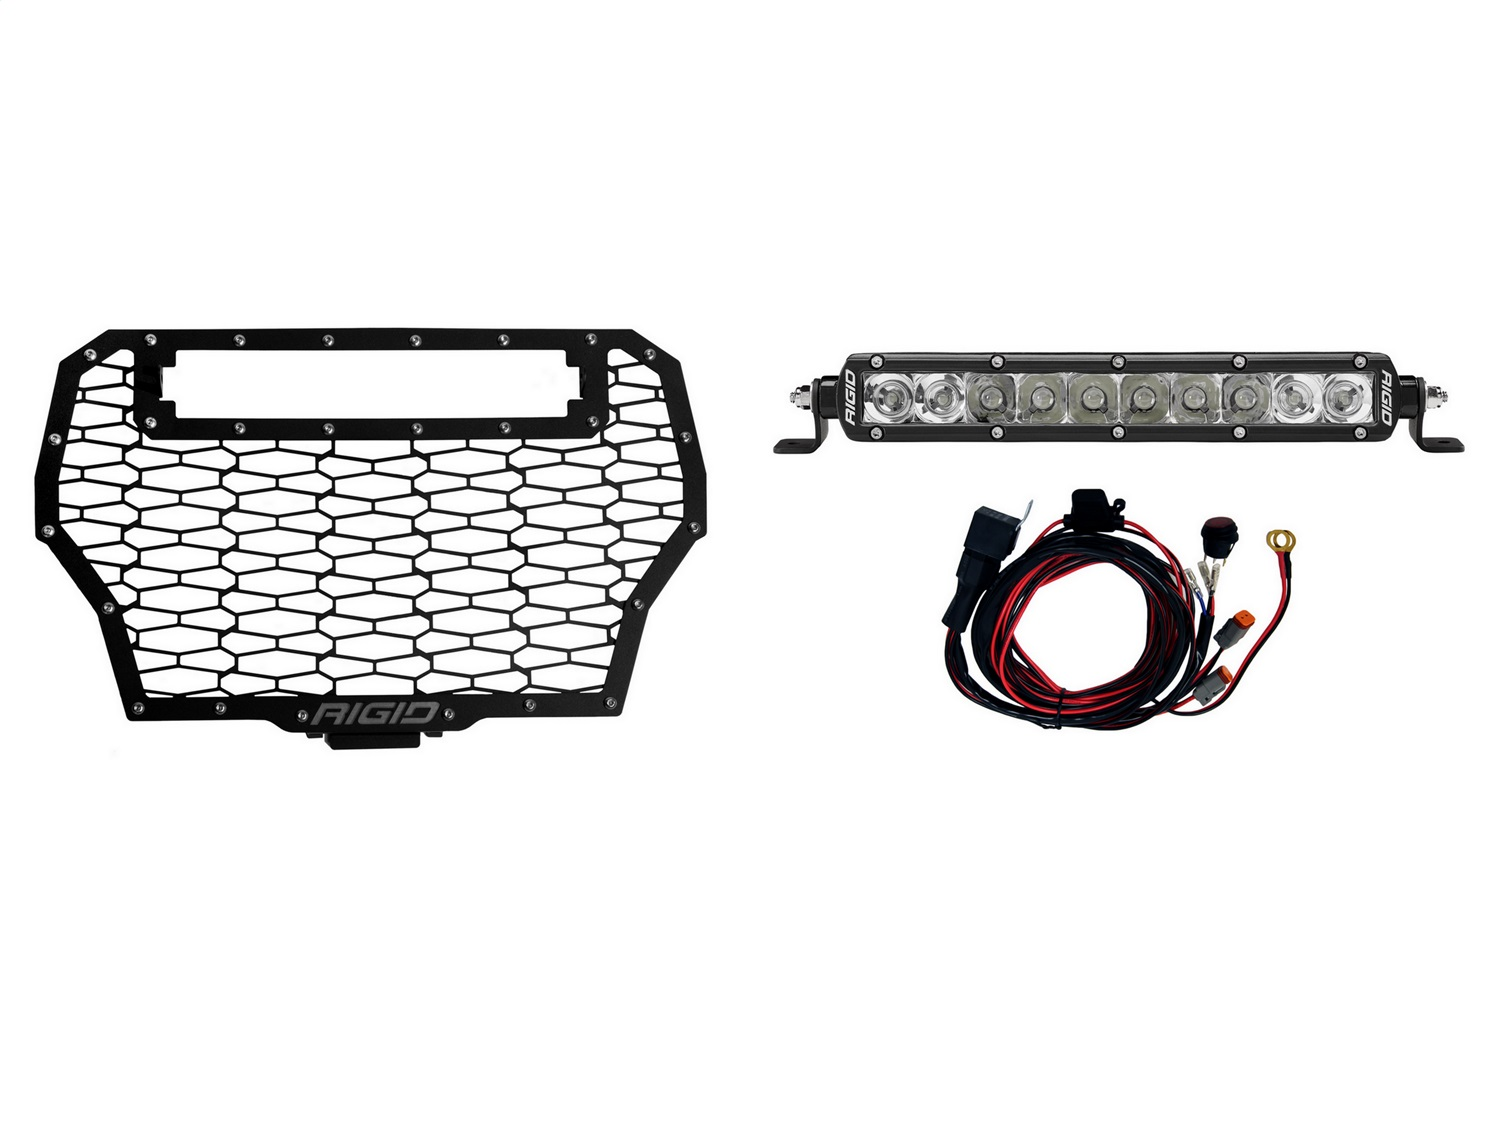 Rigid Industries Polaris Rzr Turbo Grille Fits